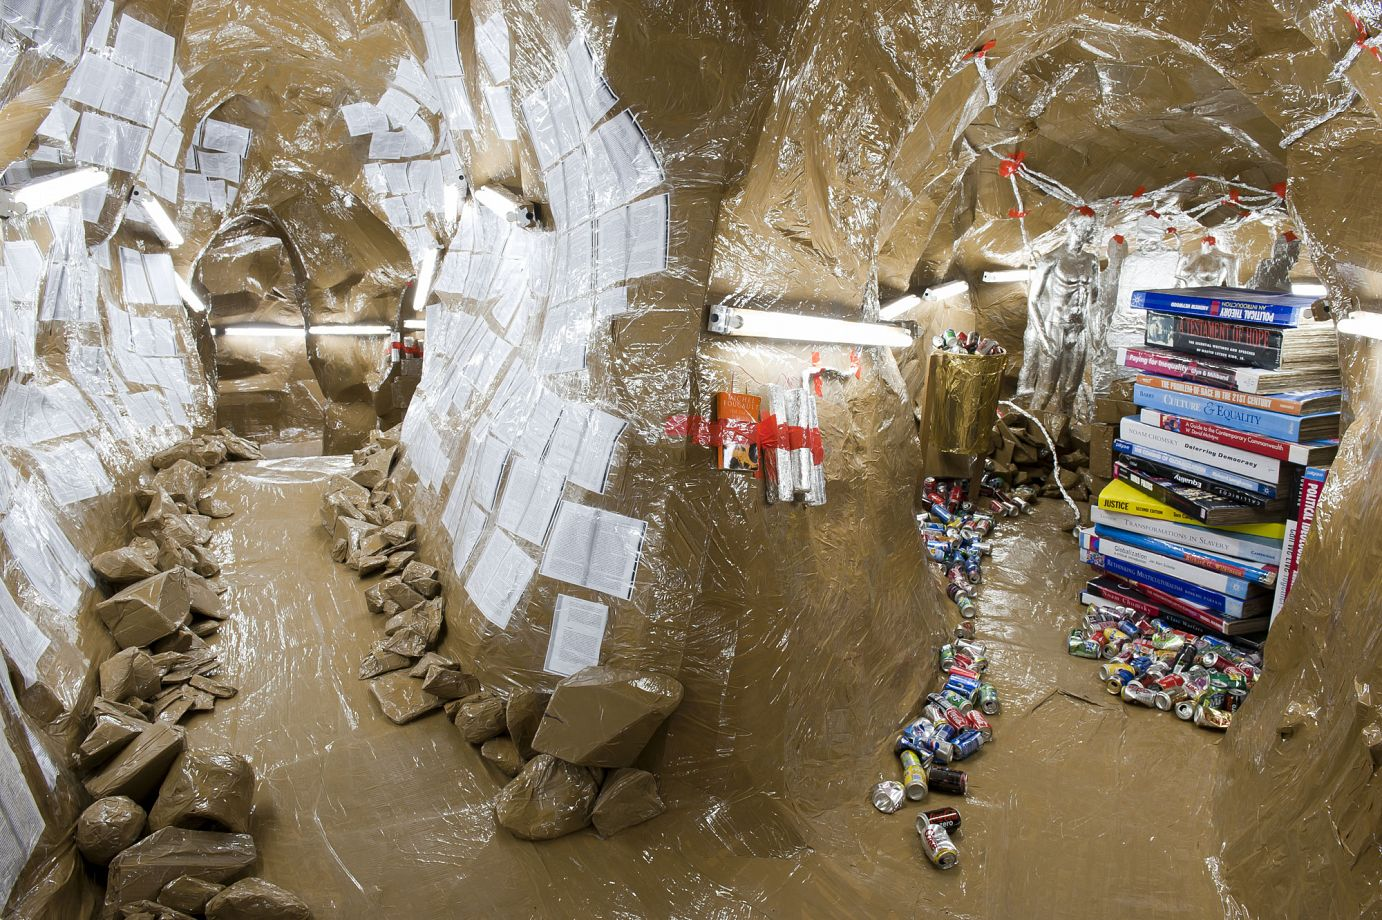 Thomas Hirschhorn's Cavemanman at the Walker Art Center